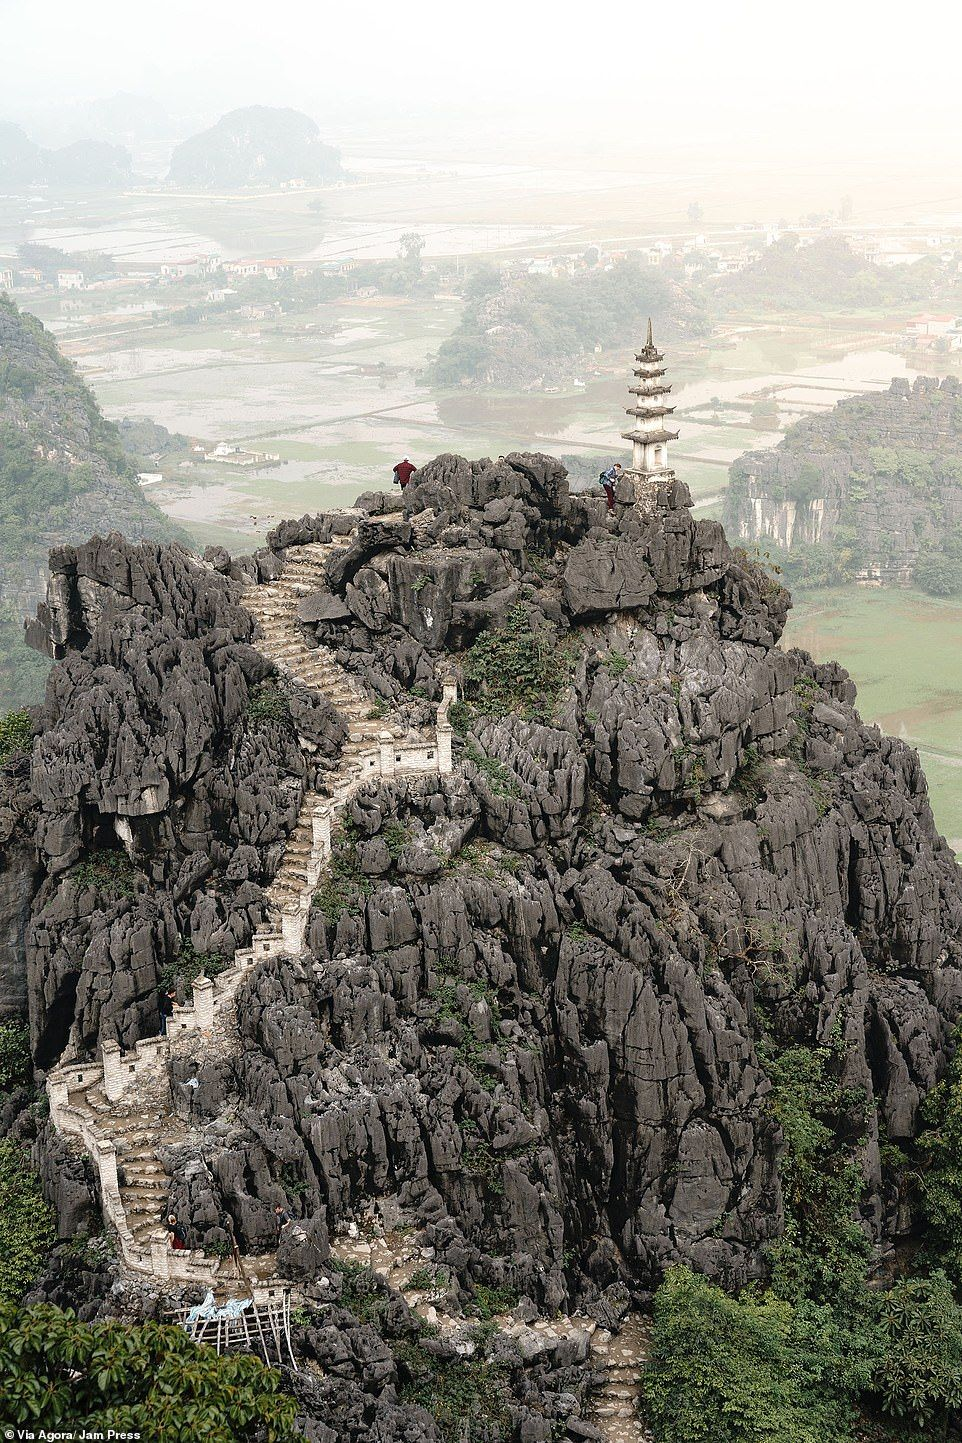 8250-8057279-_Vietnam_view_by_Marco_Vulinovic_from_Norway_shows_a_rocky_path_-a-35_1585059260277.jpg